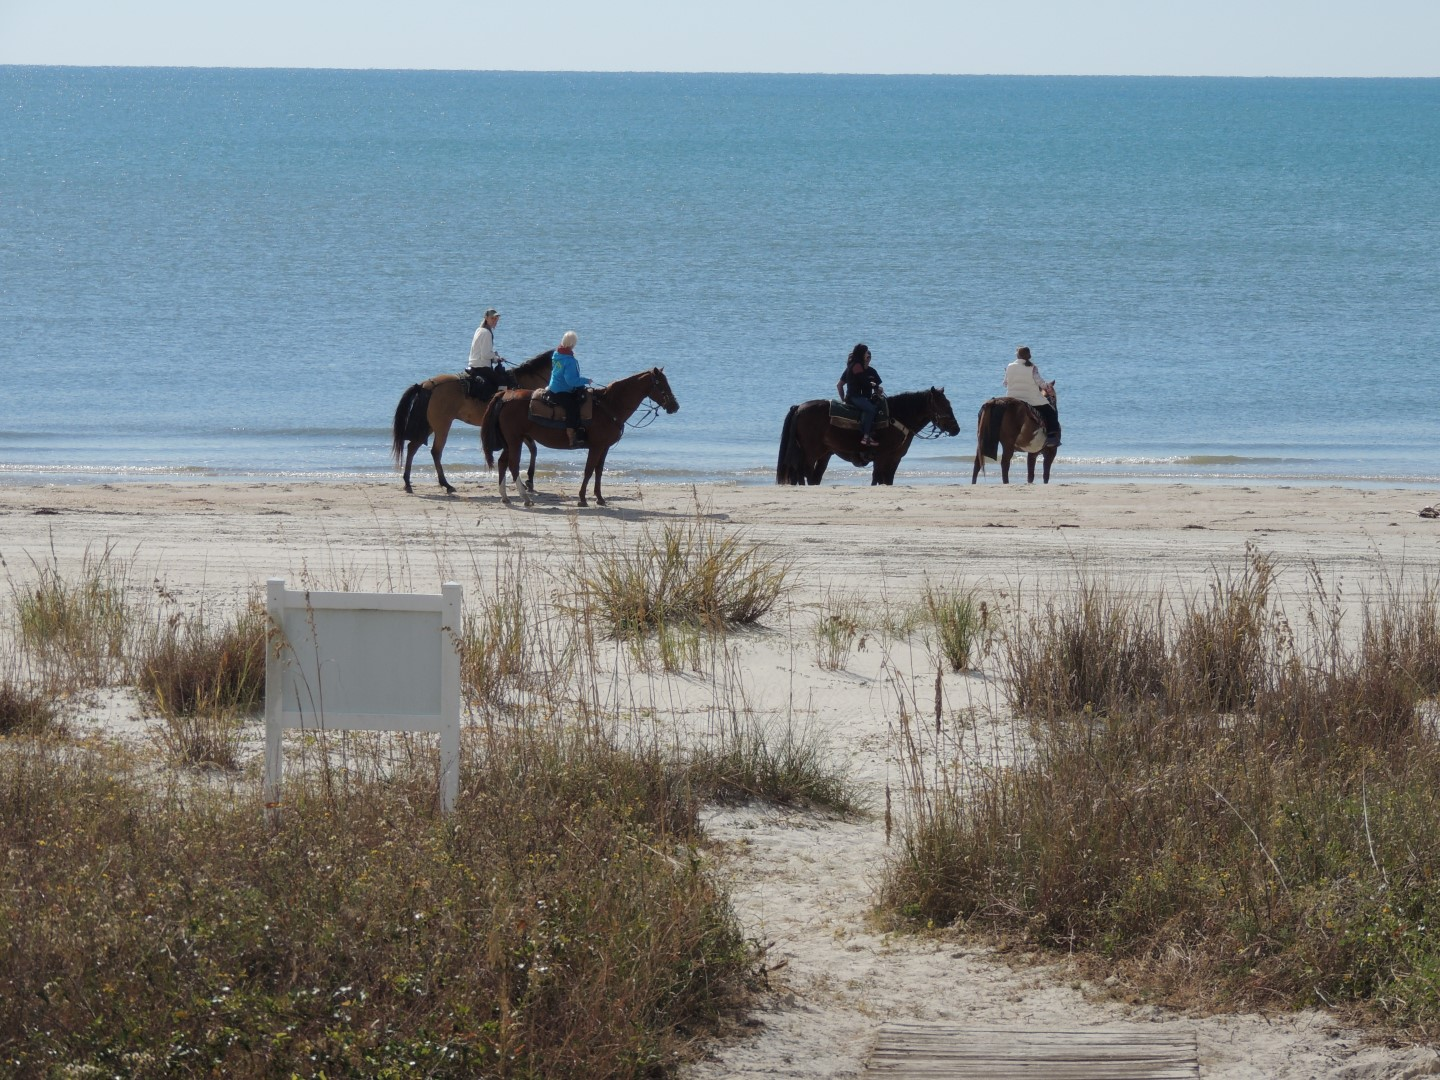 Horse Back Riding on Beach